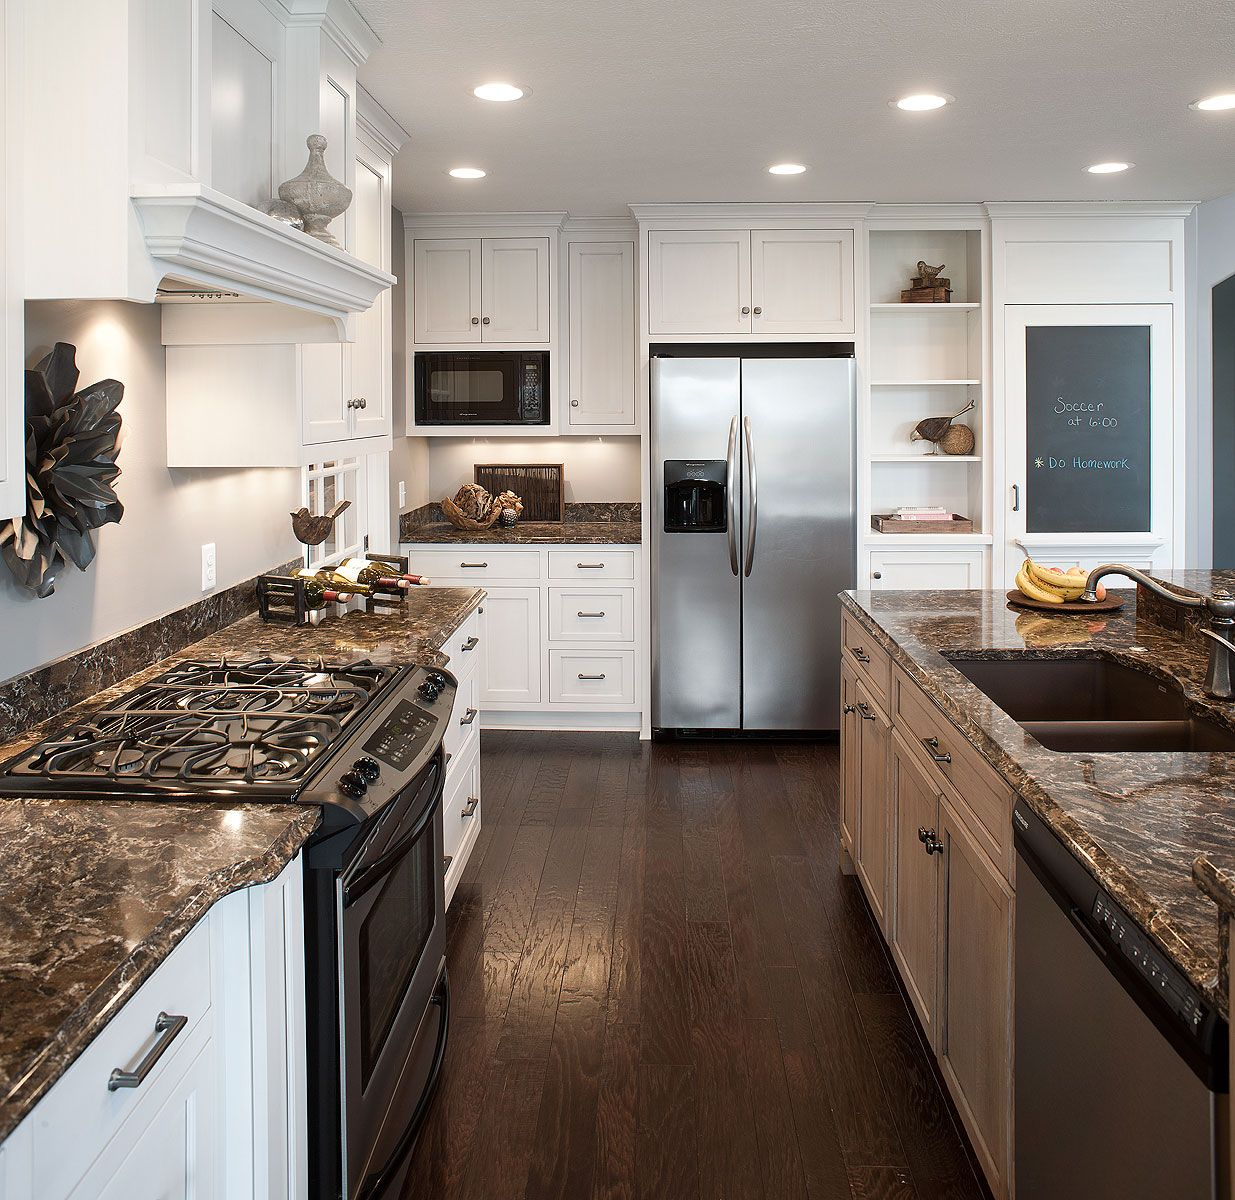 White Kitchens With Quartz Countertops: Kitchen Appliance Layout By Mullet Cabinet In Millersburg